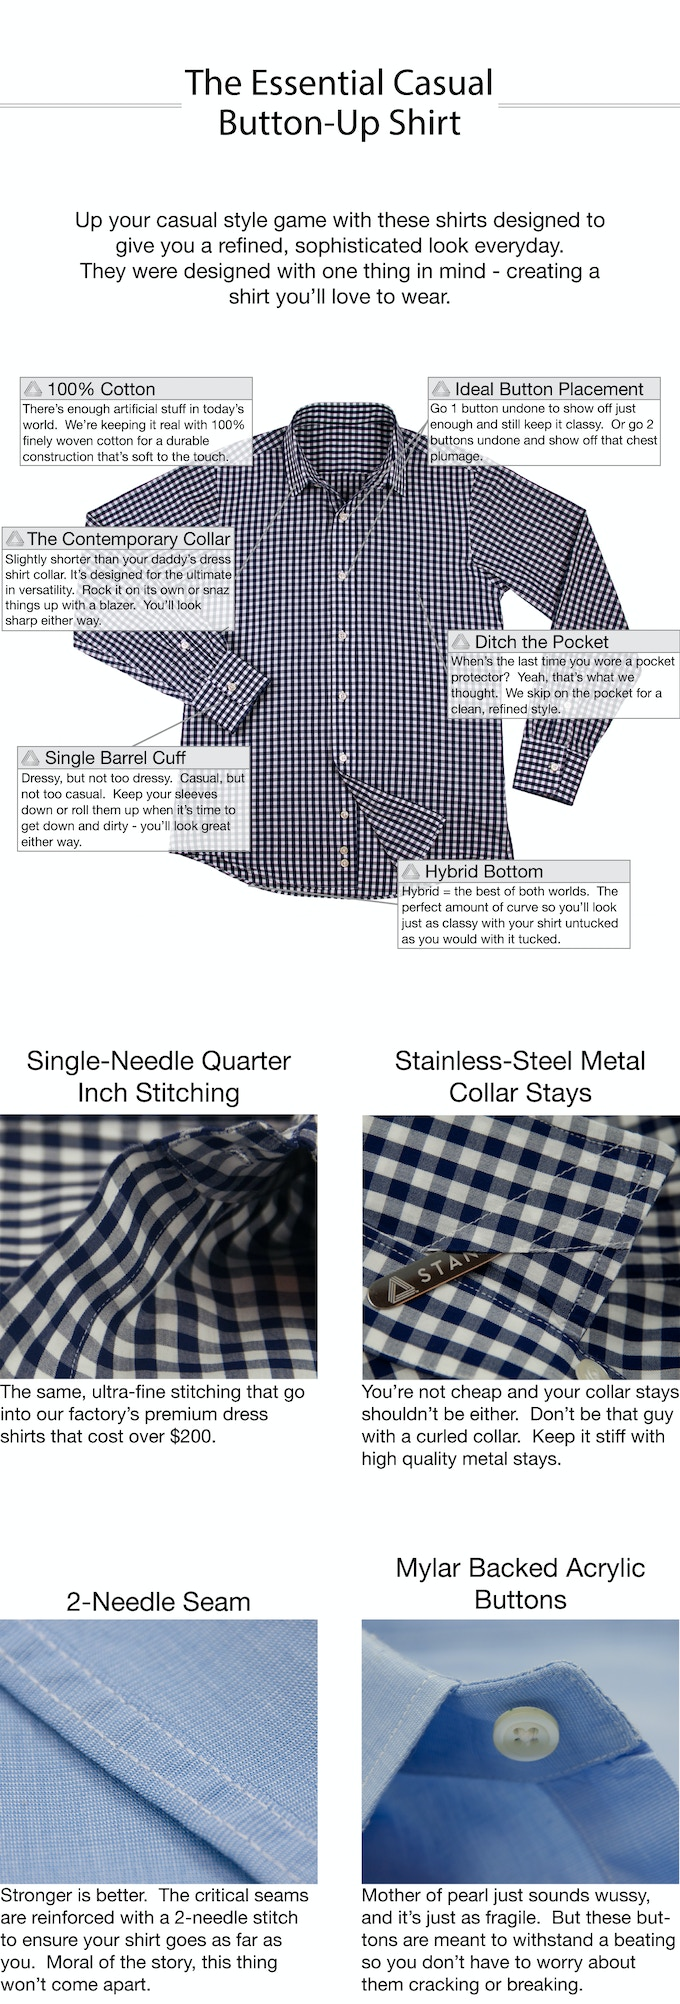 Shirt design placement